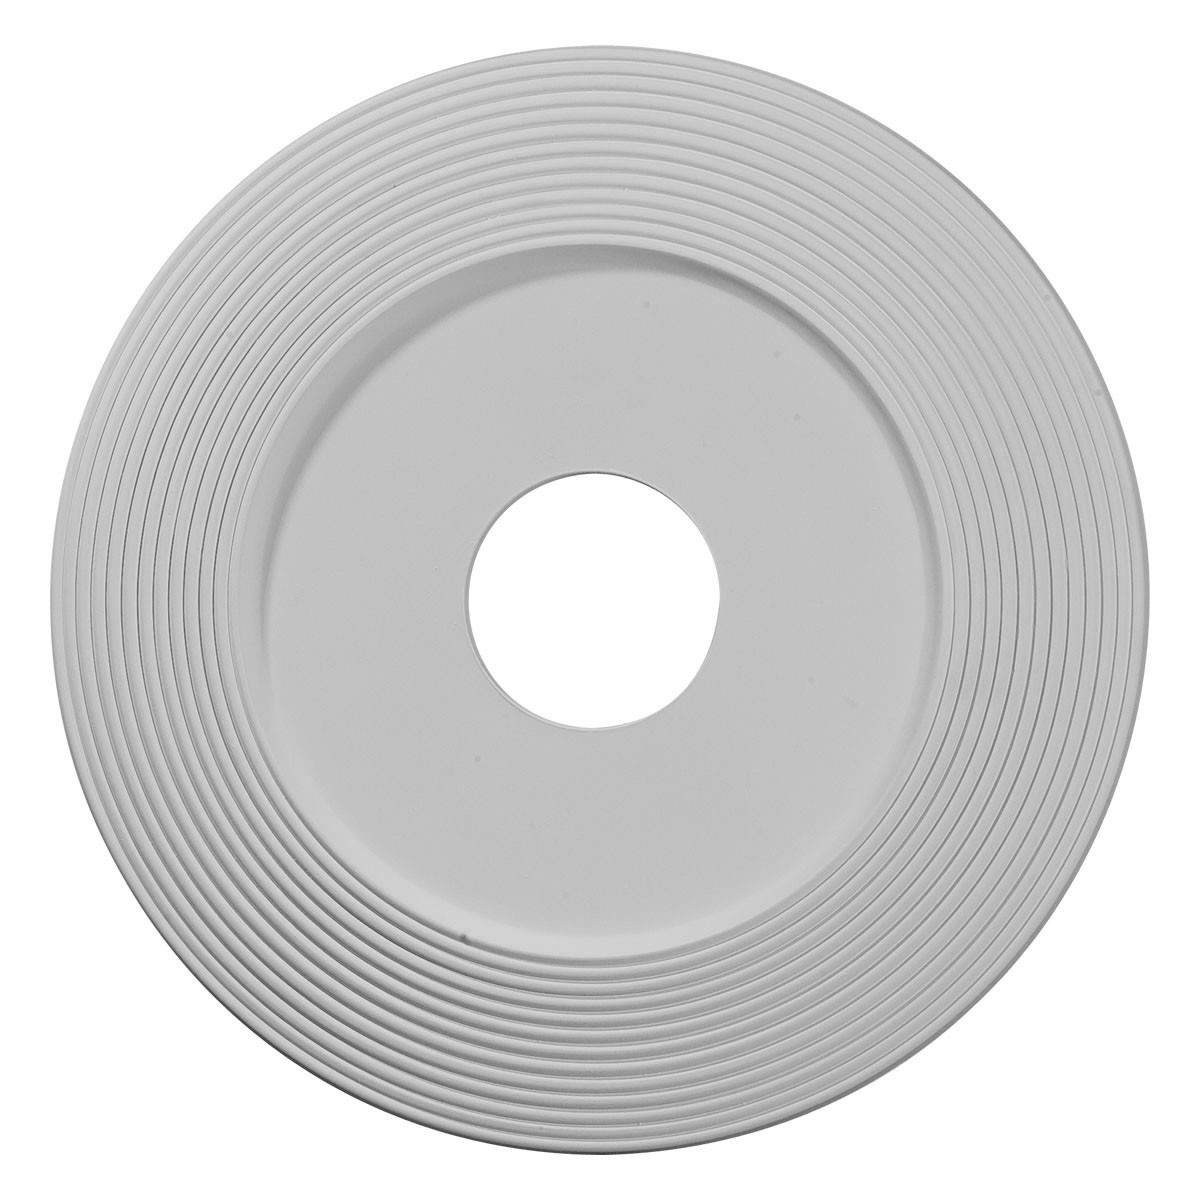 "EM-CM16AD - 16 1/8""OD x 3 5/8""ID x 1""P Adonis Ceiling Medallion (Fits Canopies up to 10 1/4"")"